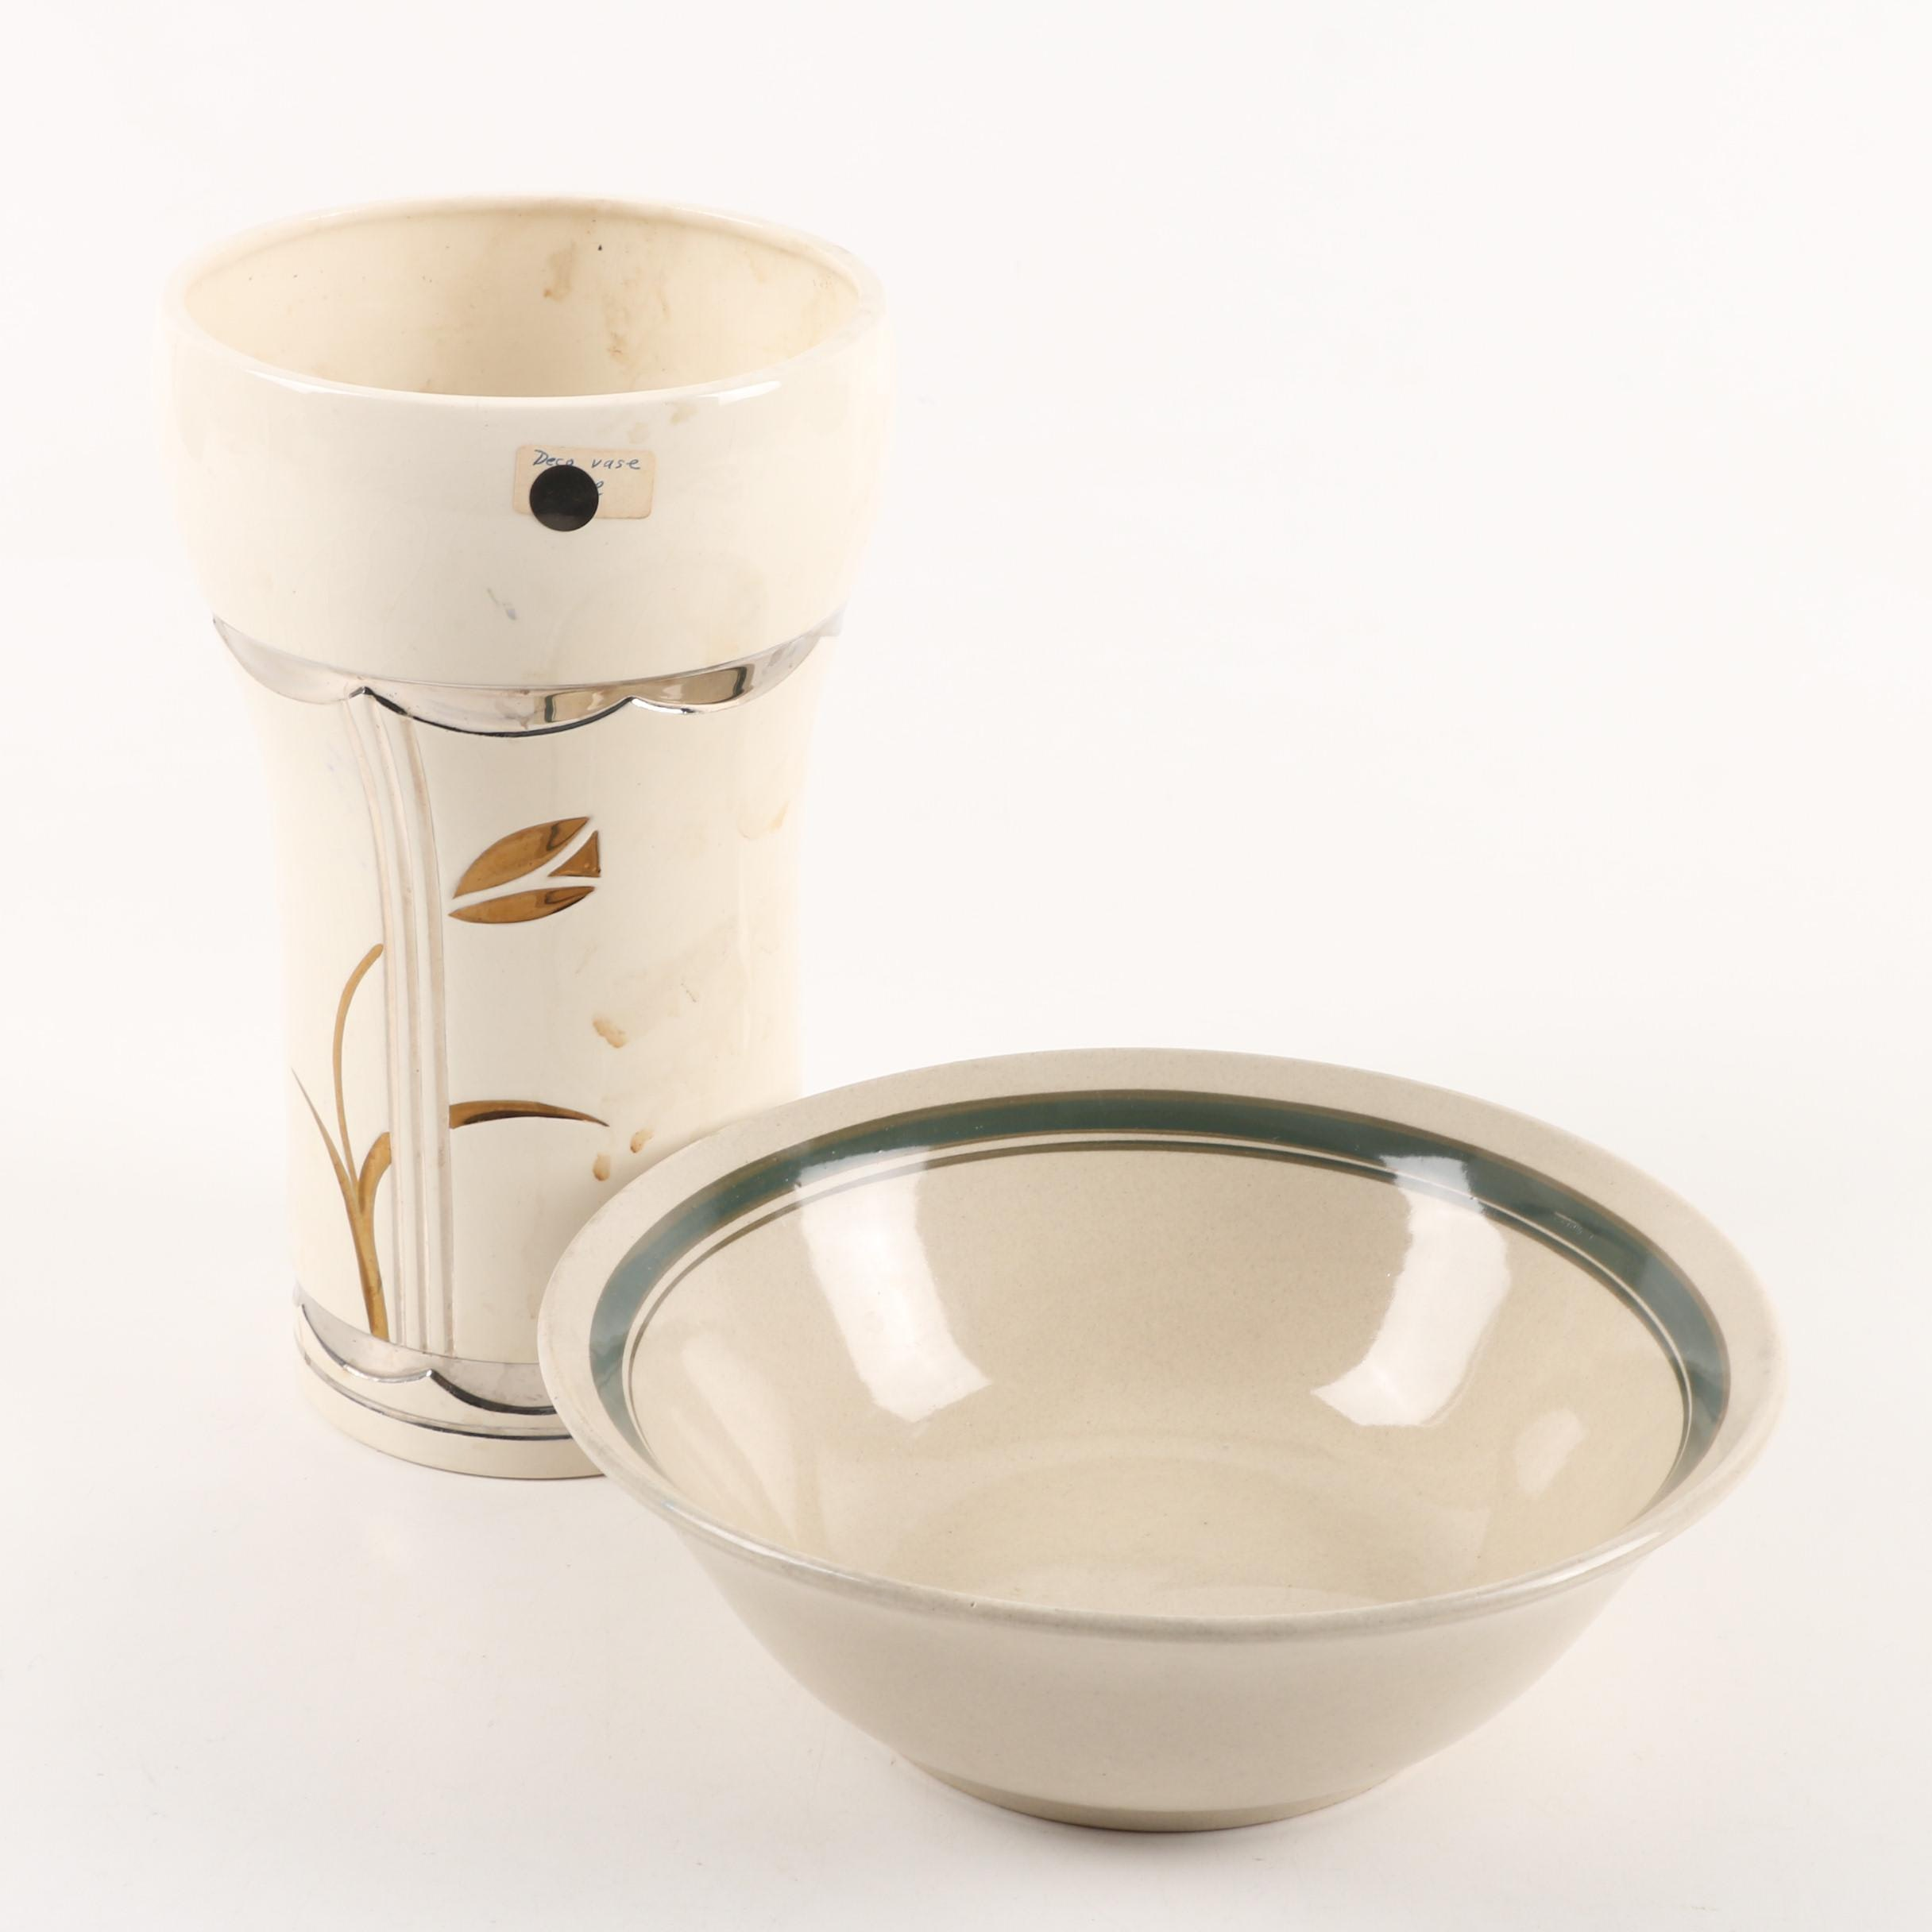 Art Deco Style Silver and Gold Accented Ceramic Vase  with Earthenware Bowl